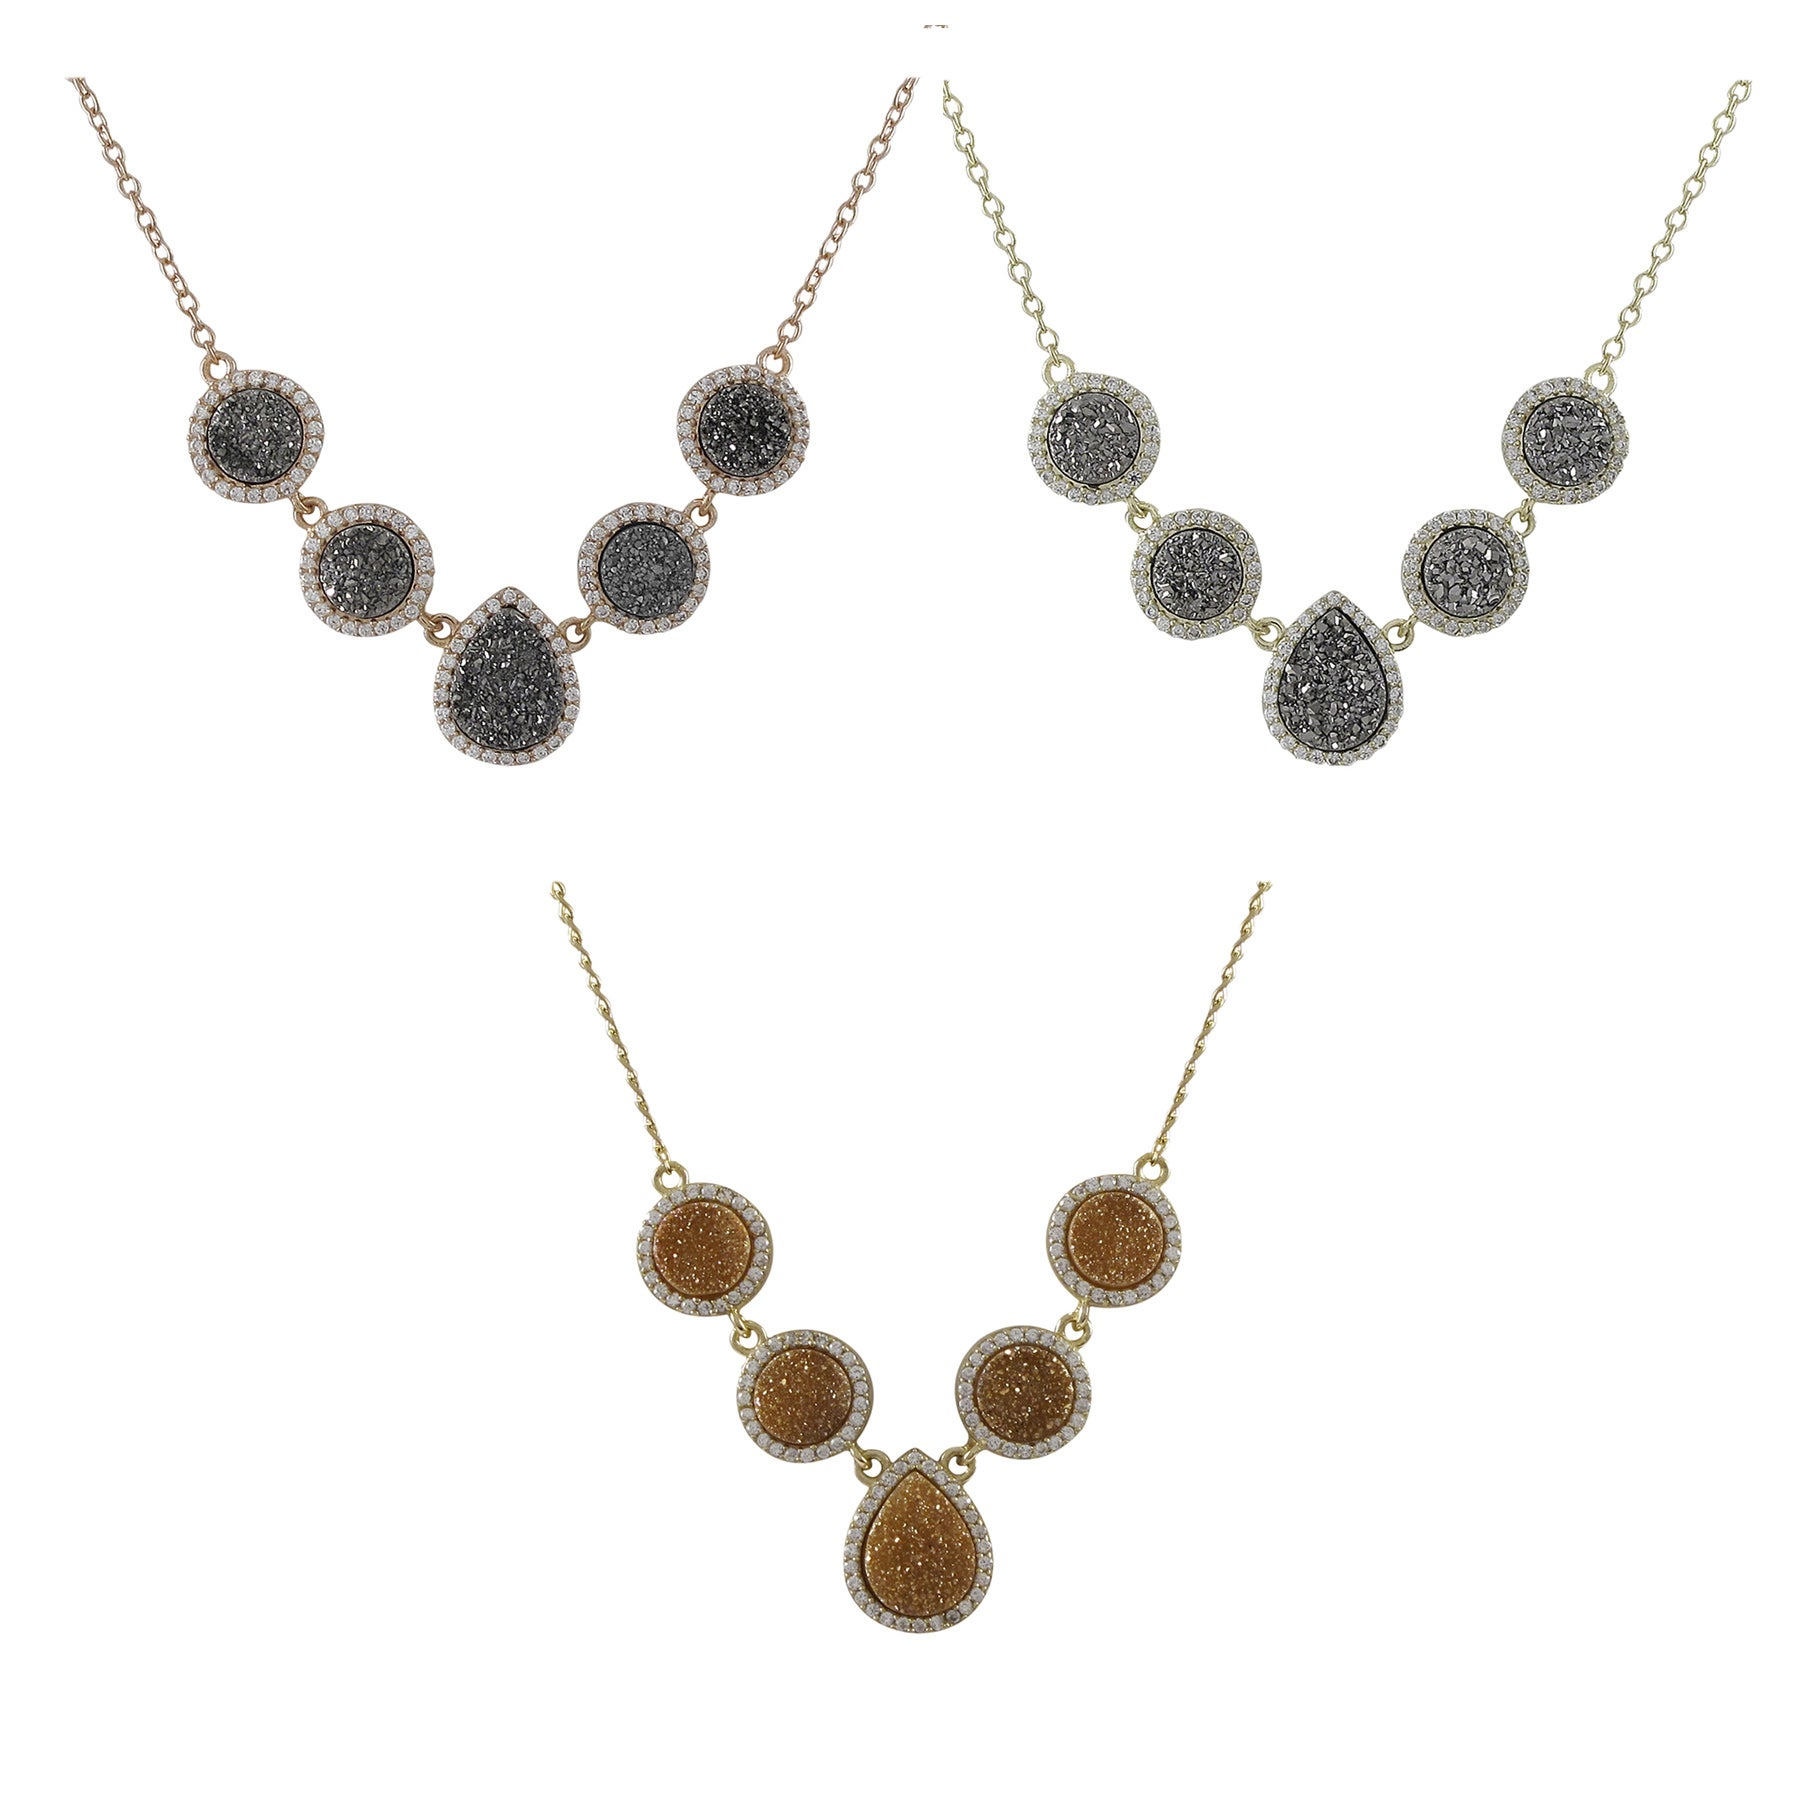 Rose or Yellow Goldplated Sterling Silver Druzy Quartz and Cubic Zirconia Necklace